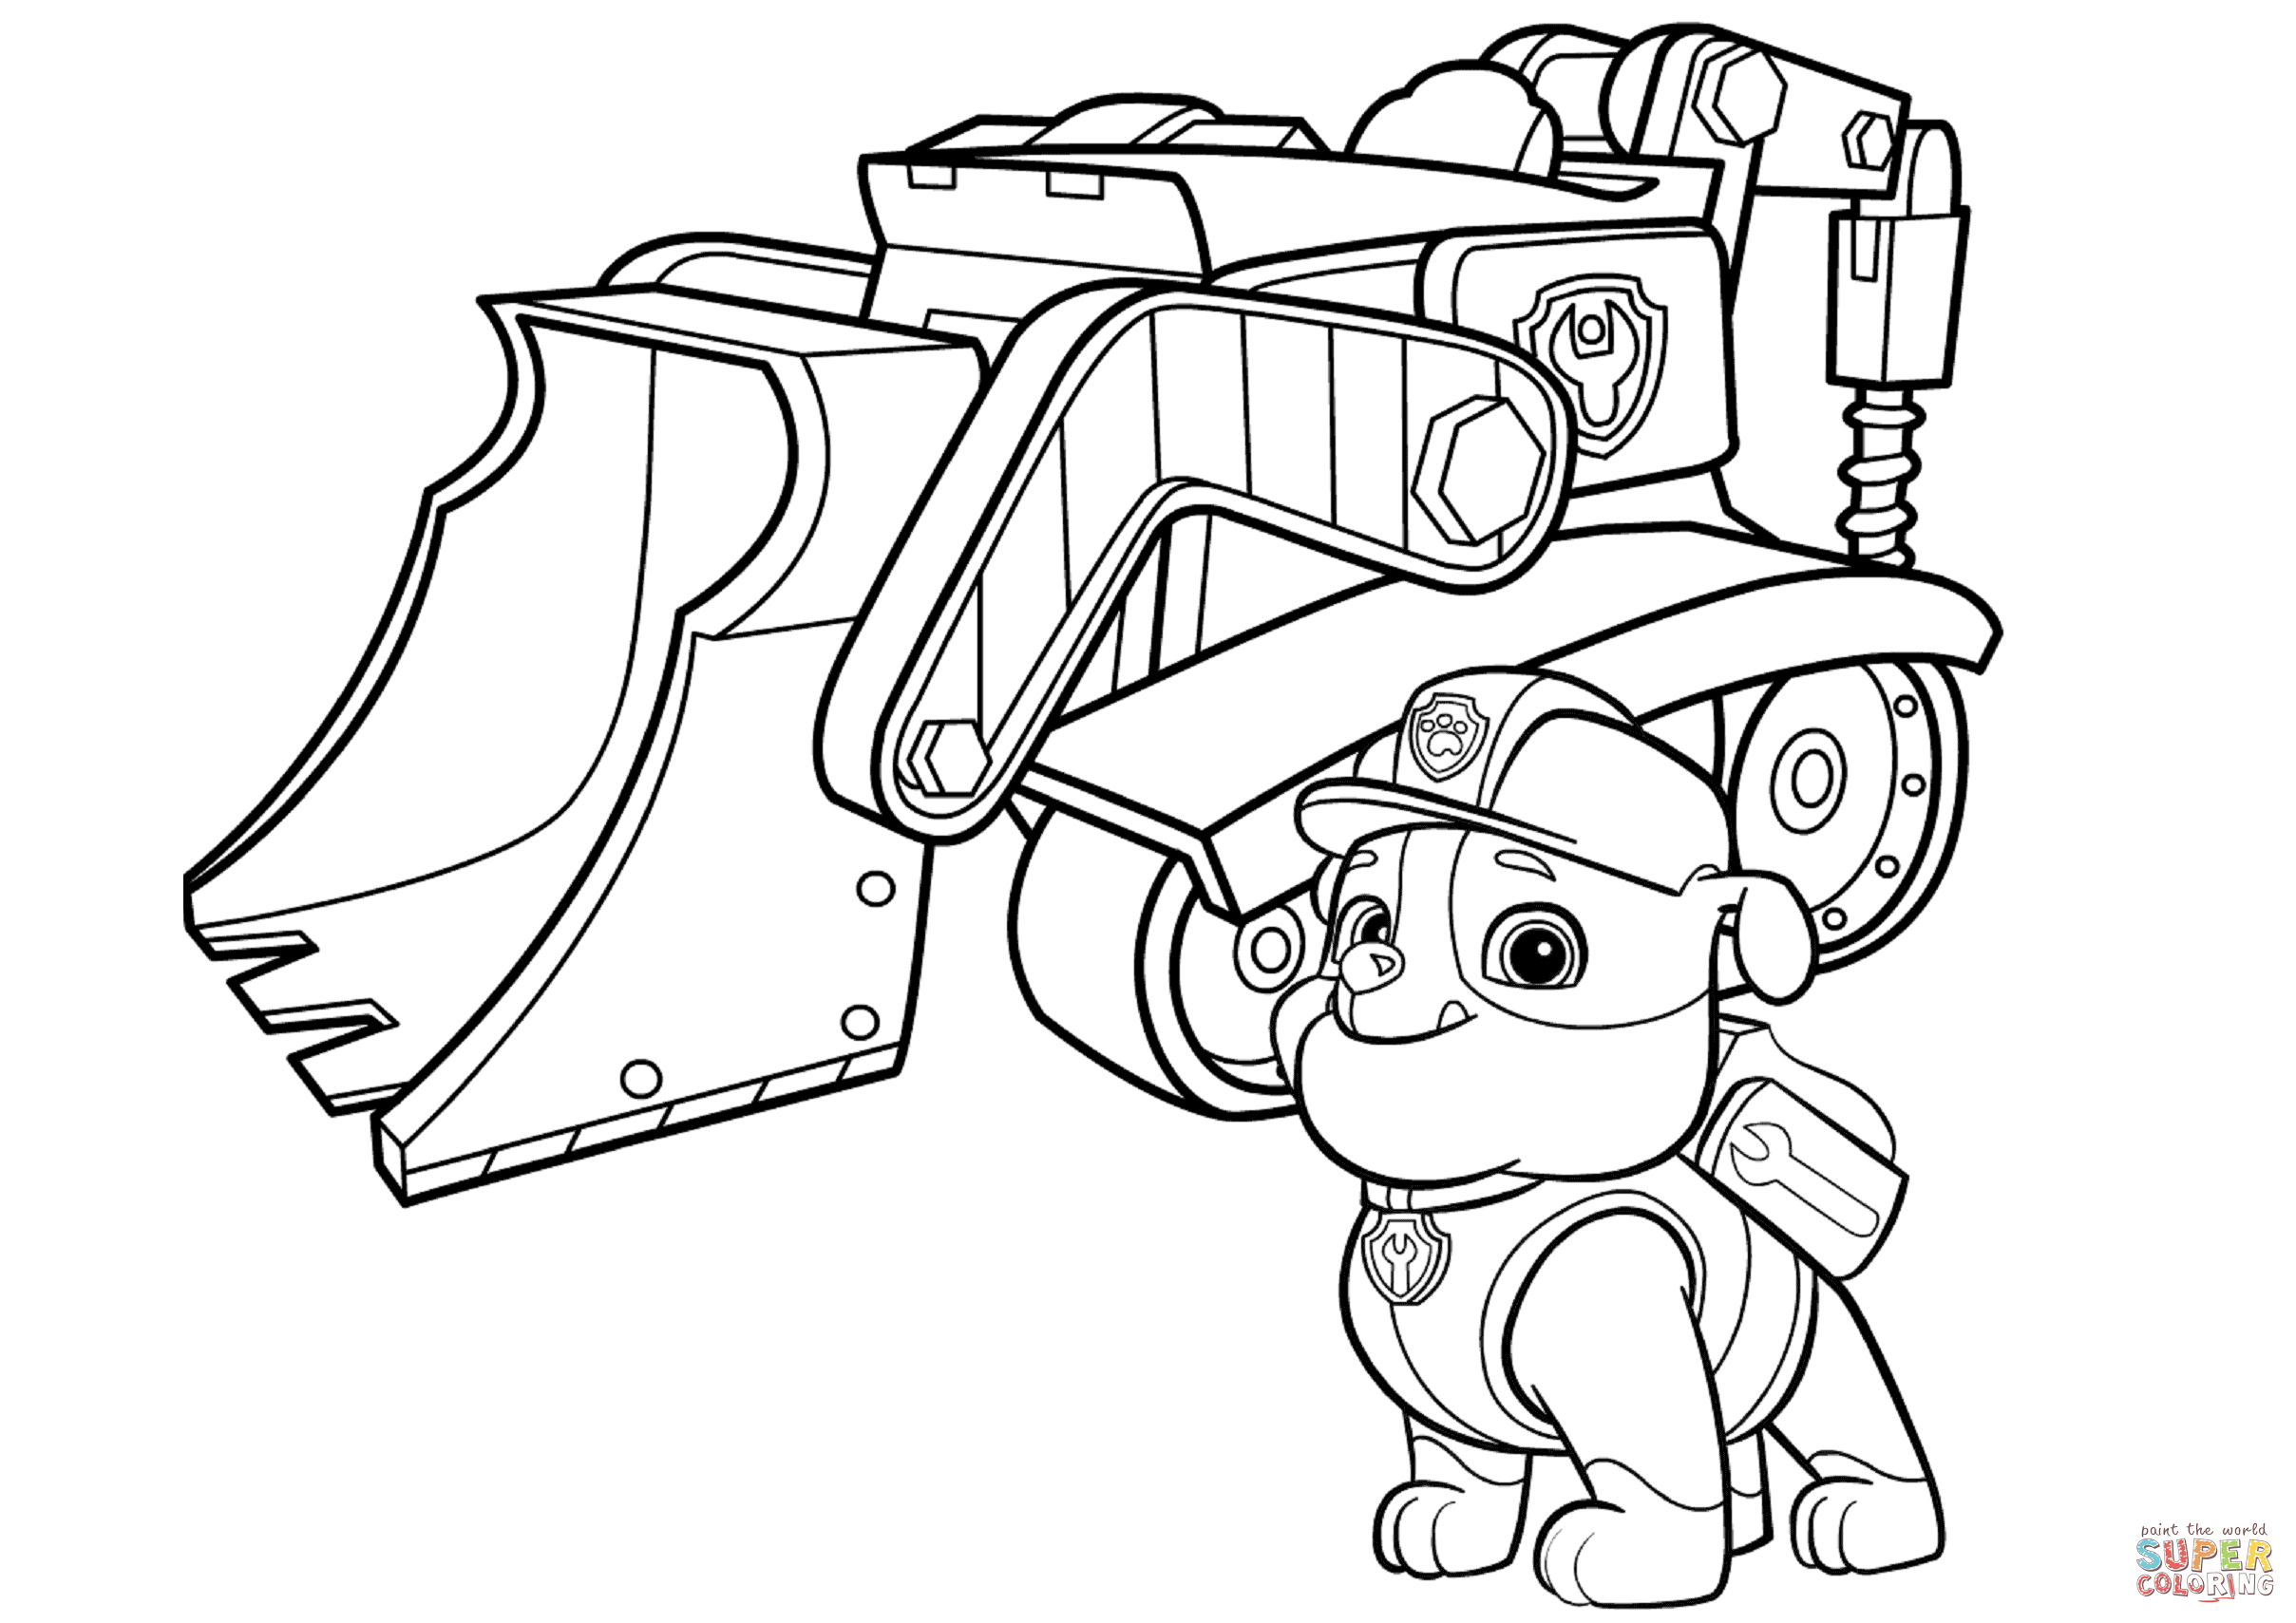 Bulldozer Coloring Pages Coloring Page For Kids